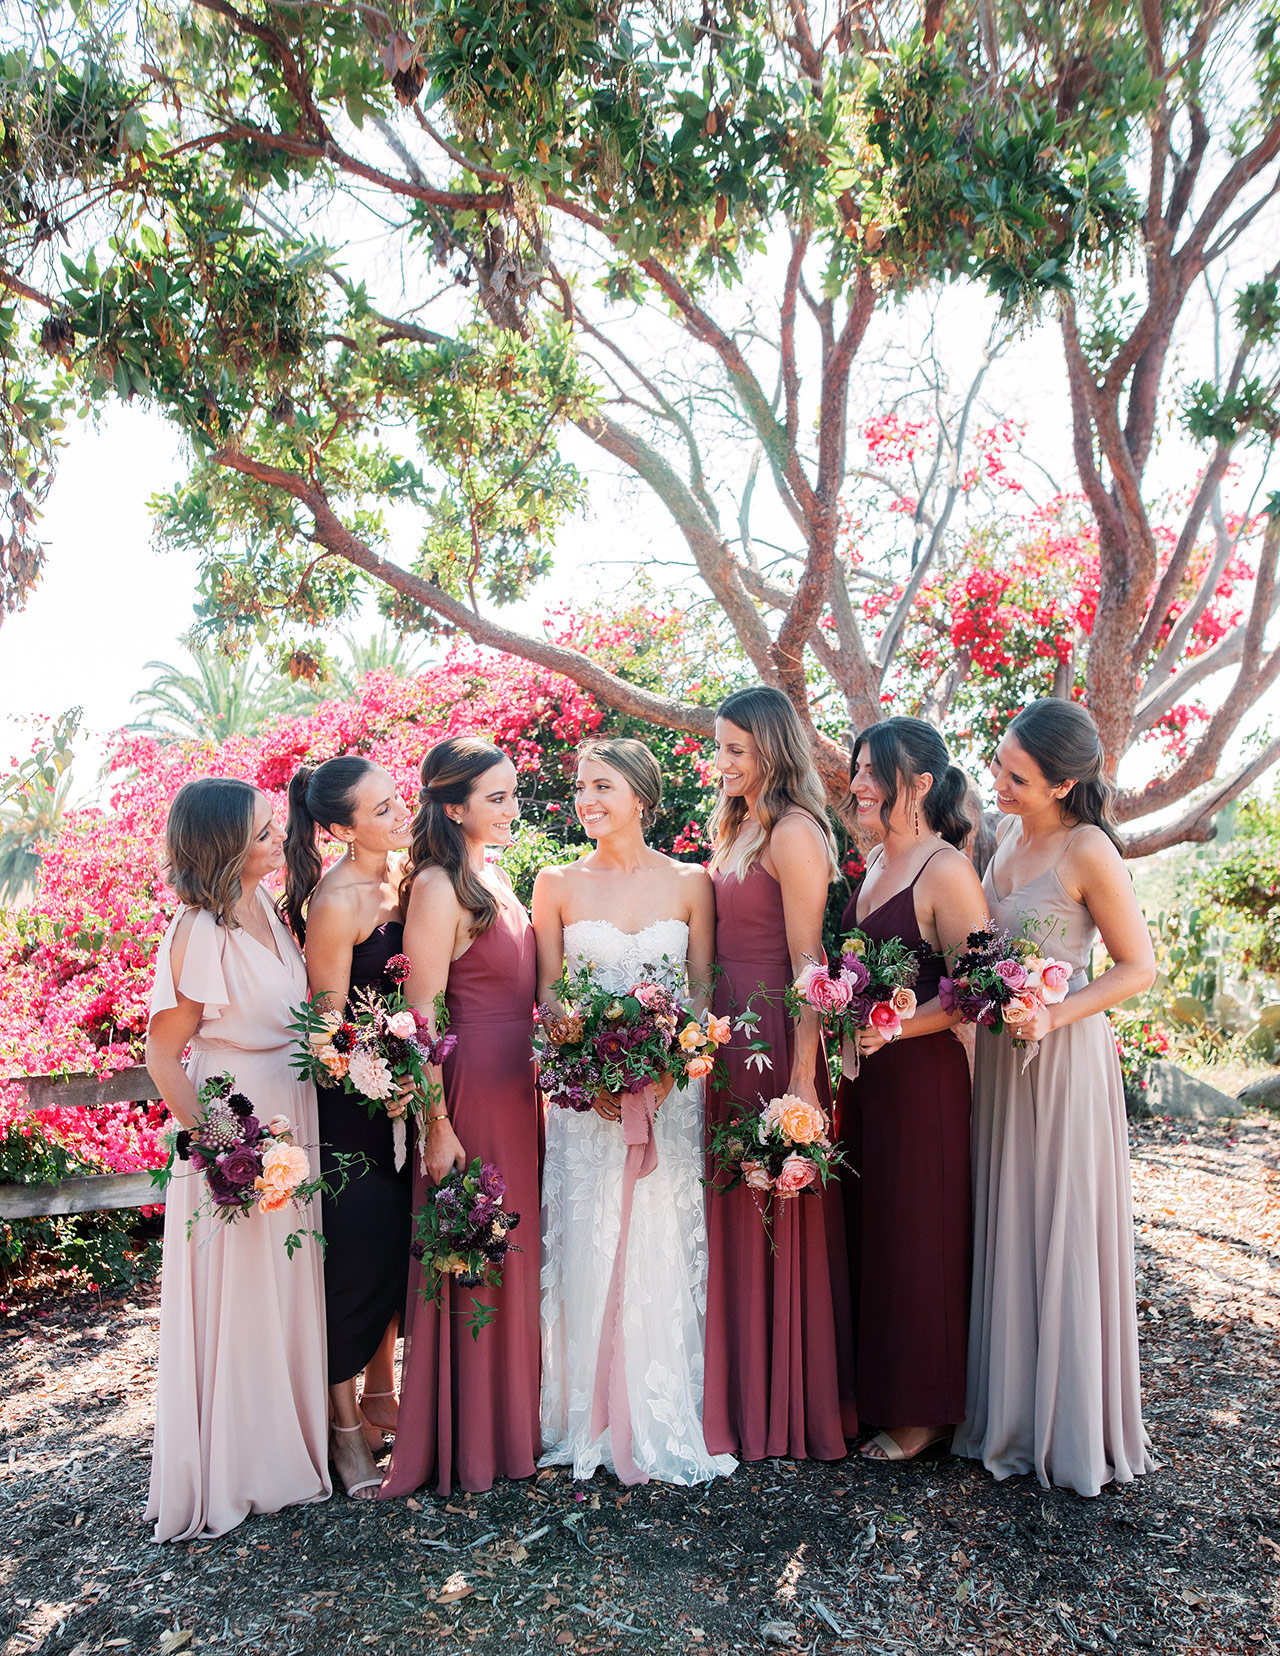 bride bridesmaids pink shade dresses pose outdoors